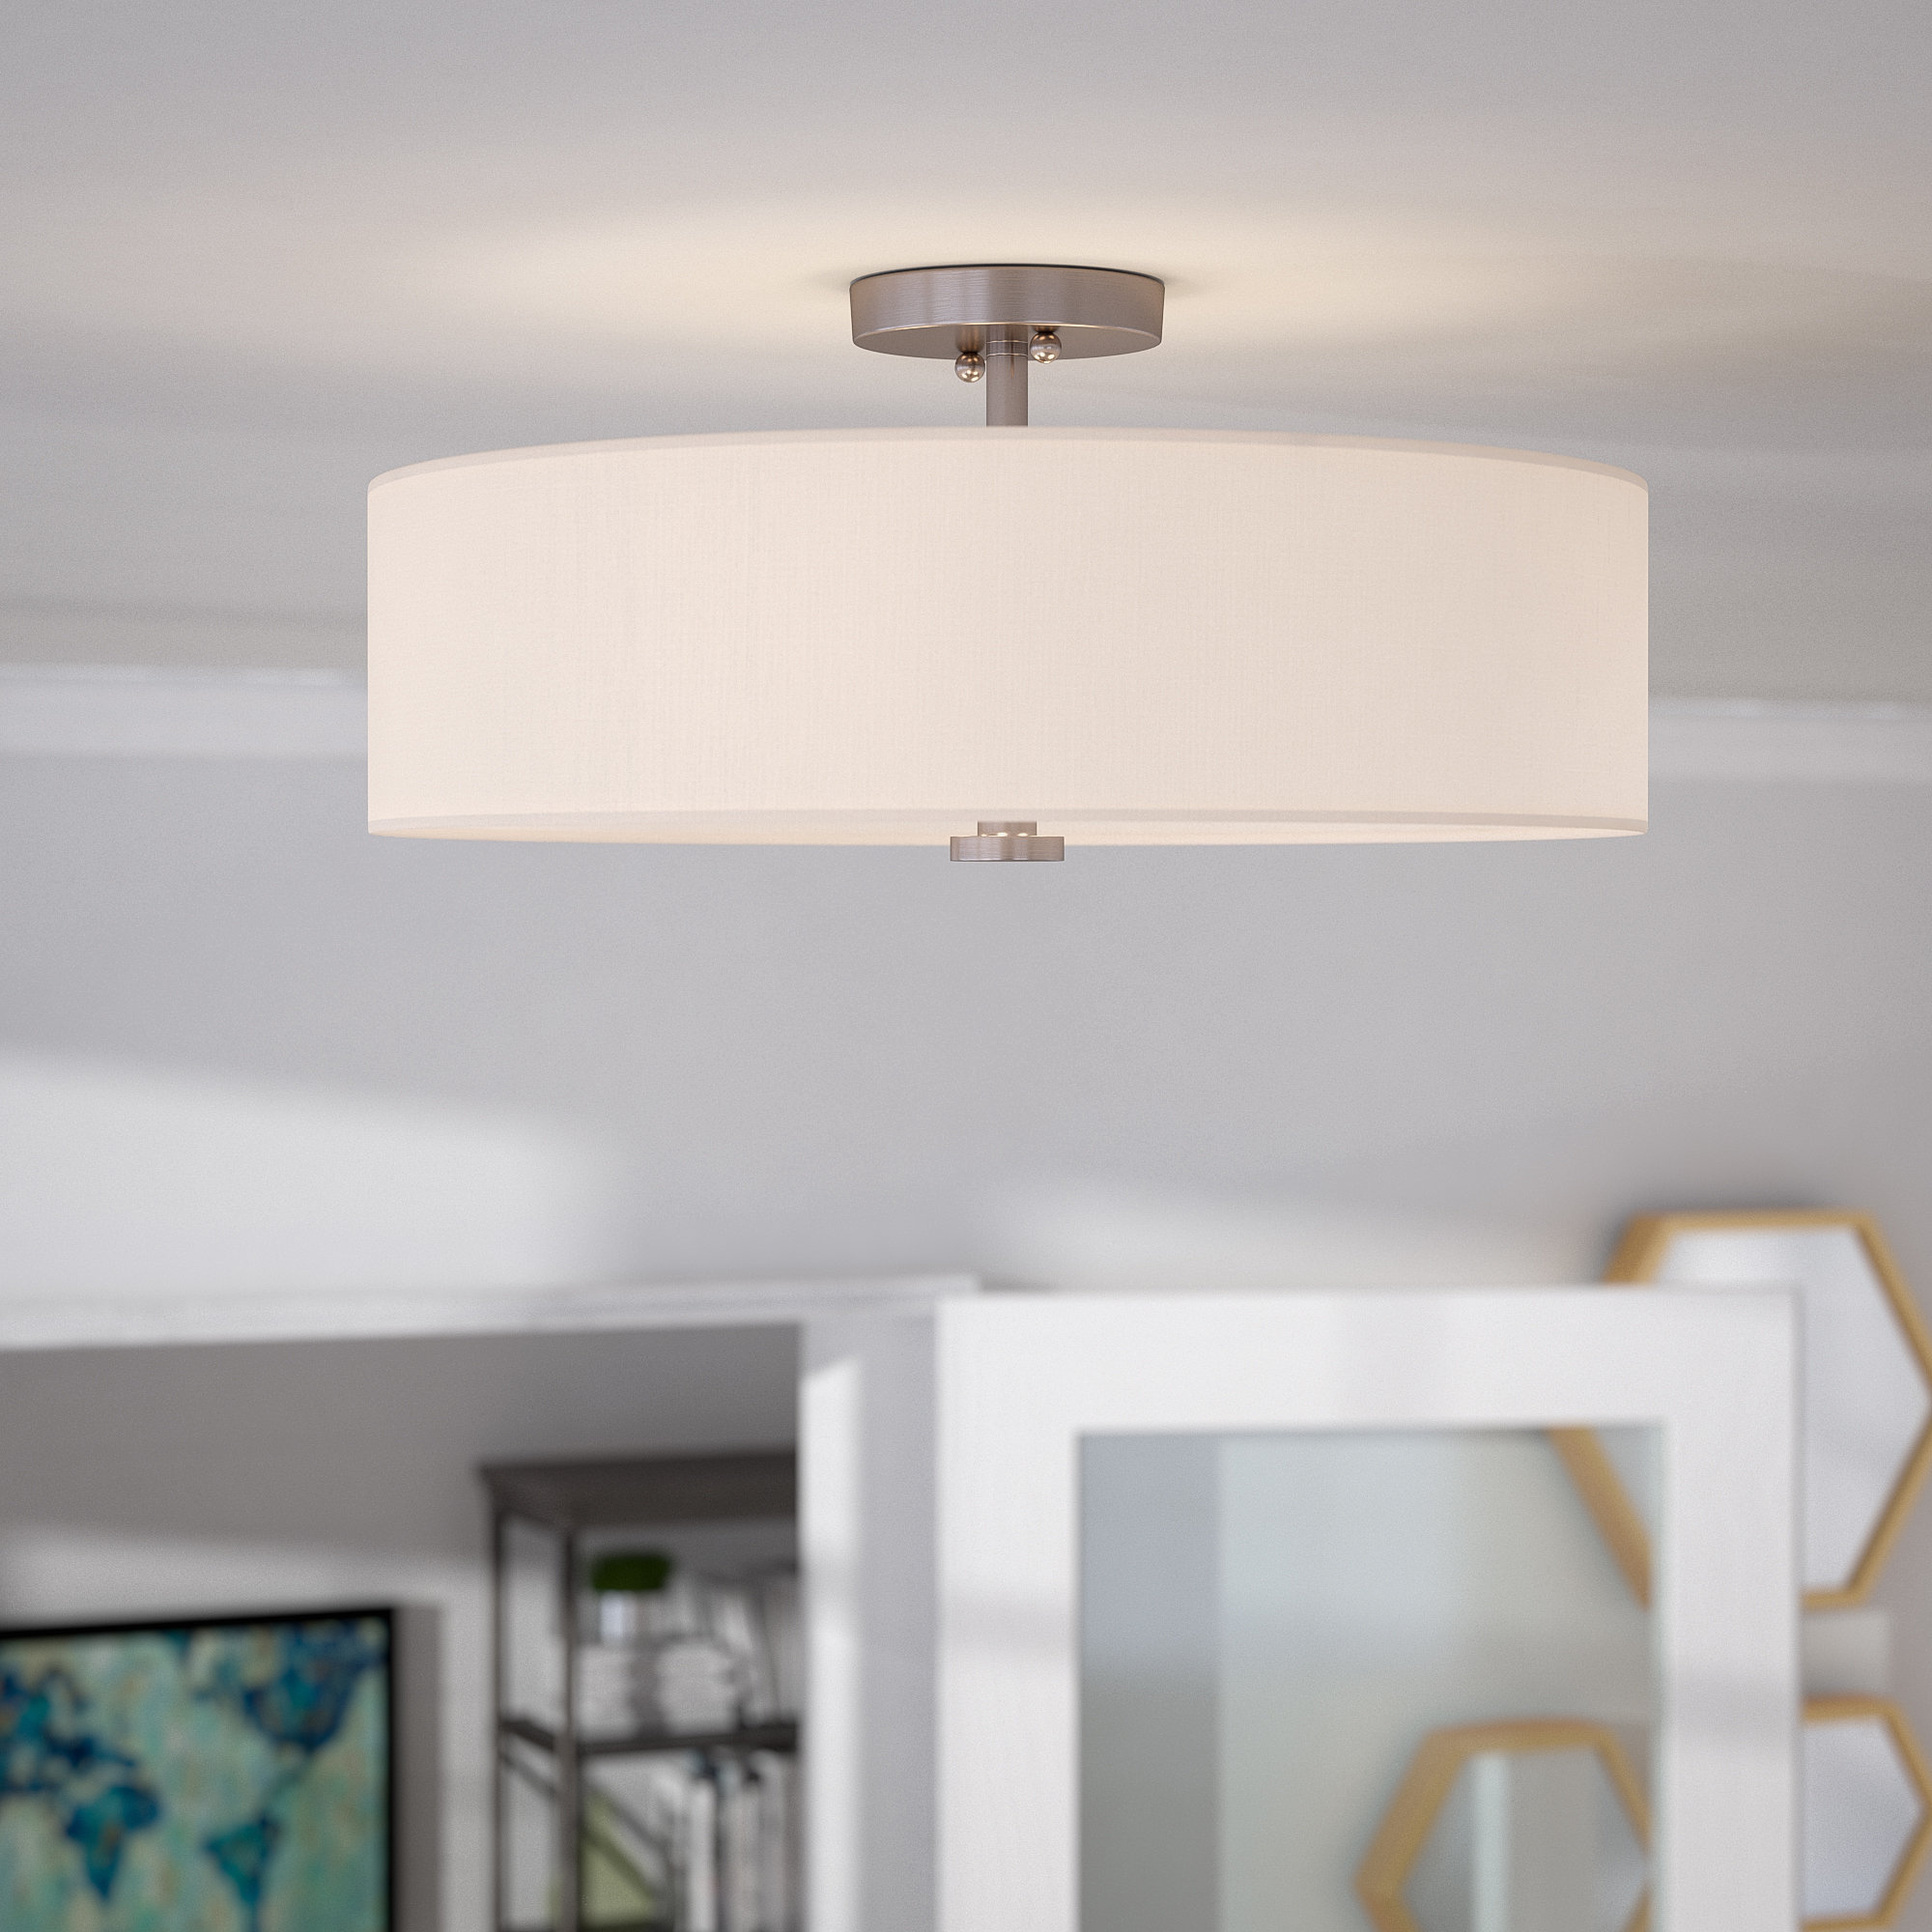 Burgoon 4 Light Semi Flush Mount With Most Recent Breithaup 4 Light Drum Chandeliers (View 6 of 20)